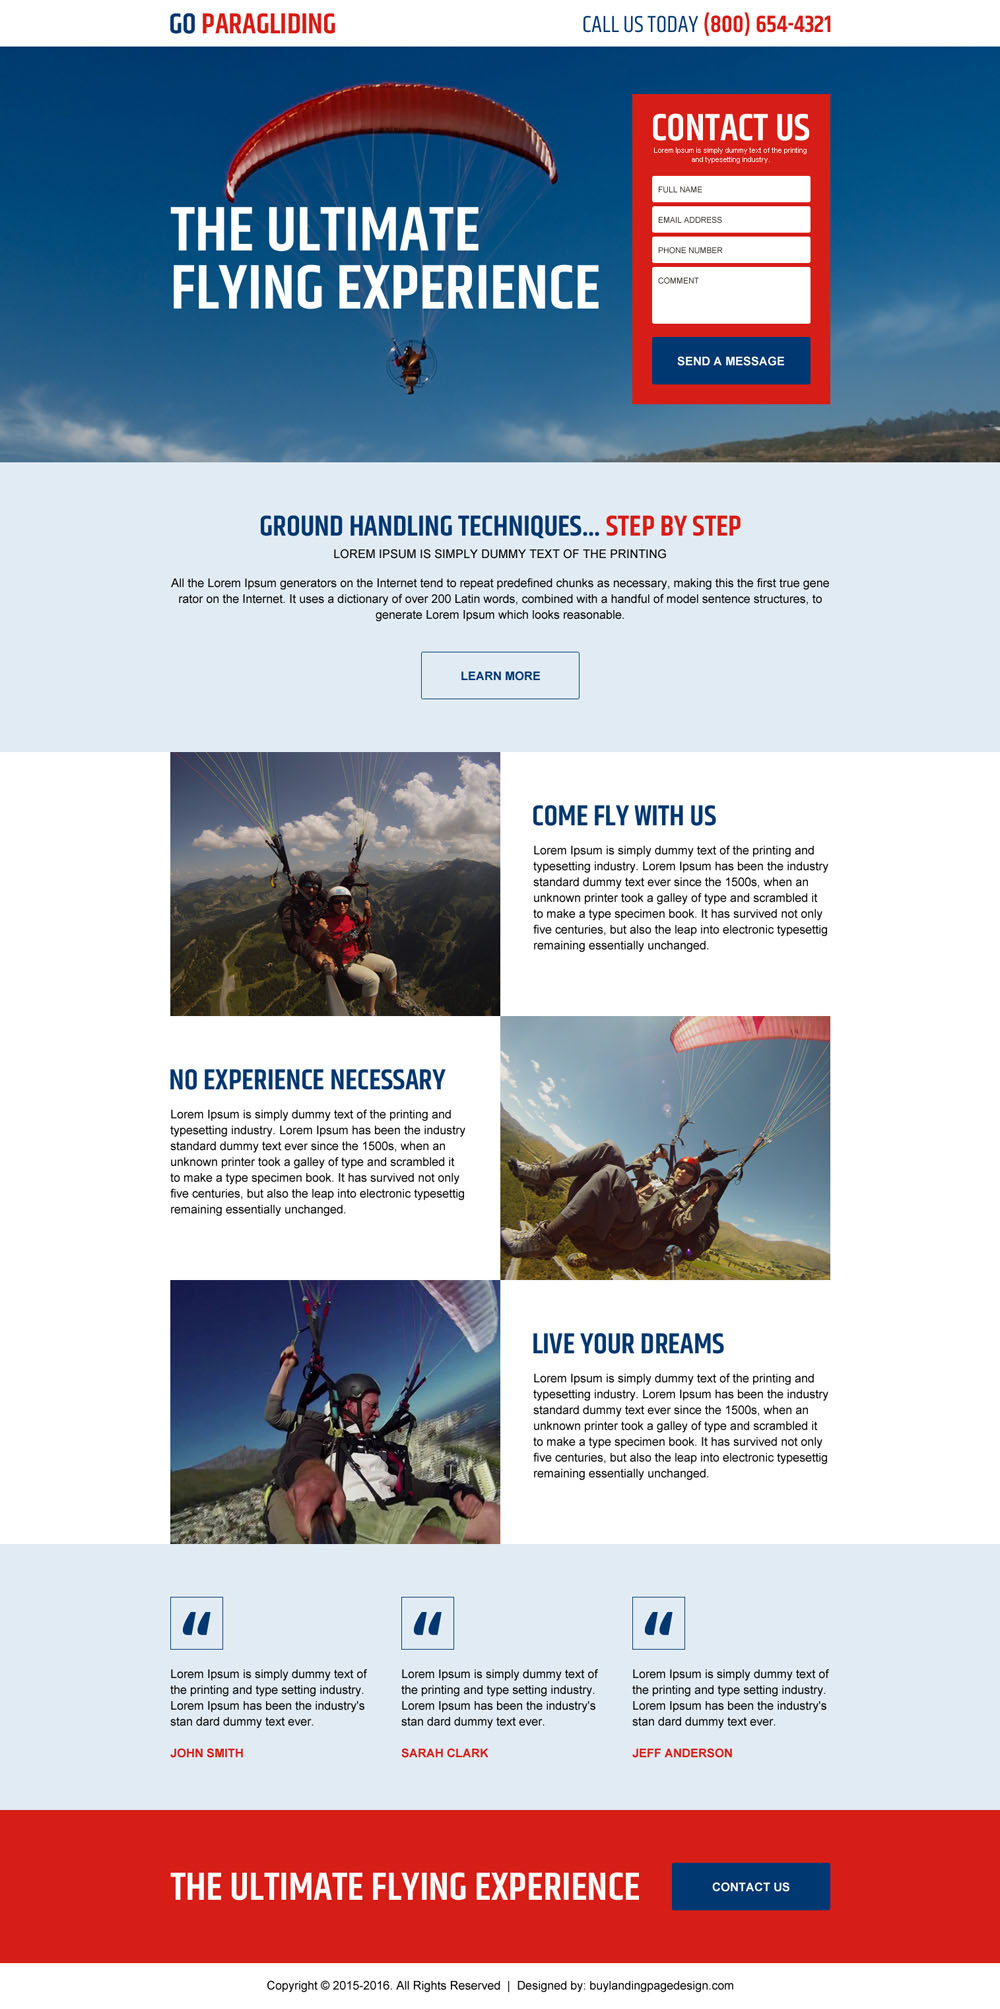 paragliding-service-lead-generation-converting-landing-page-design-001